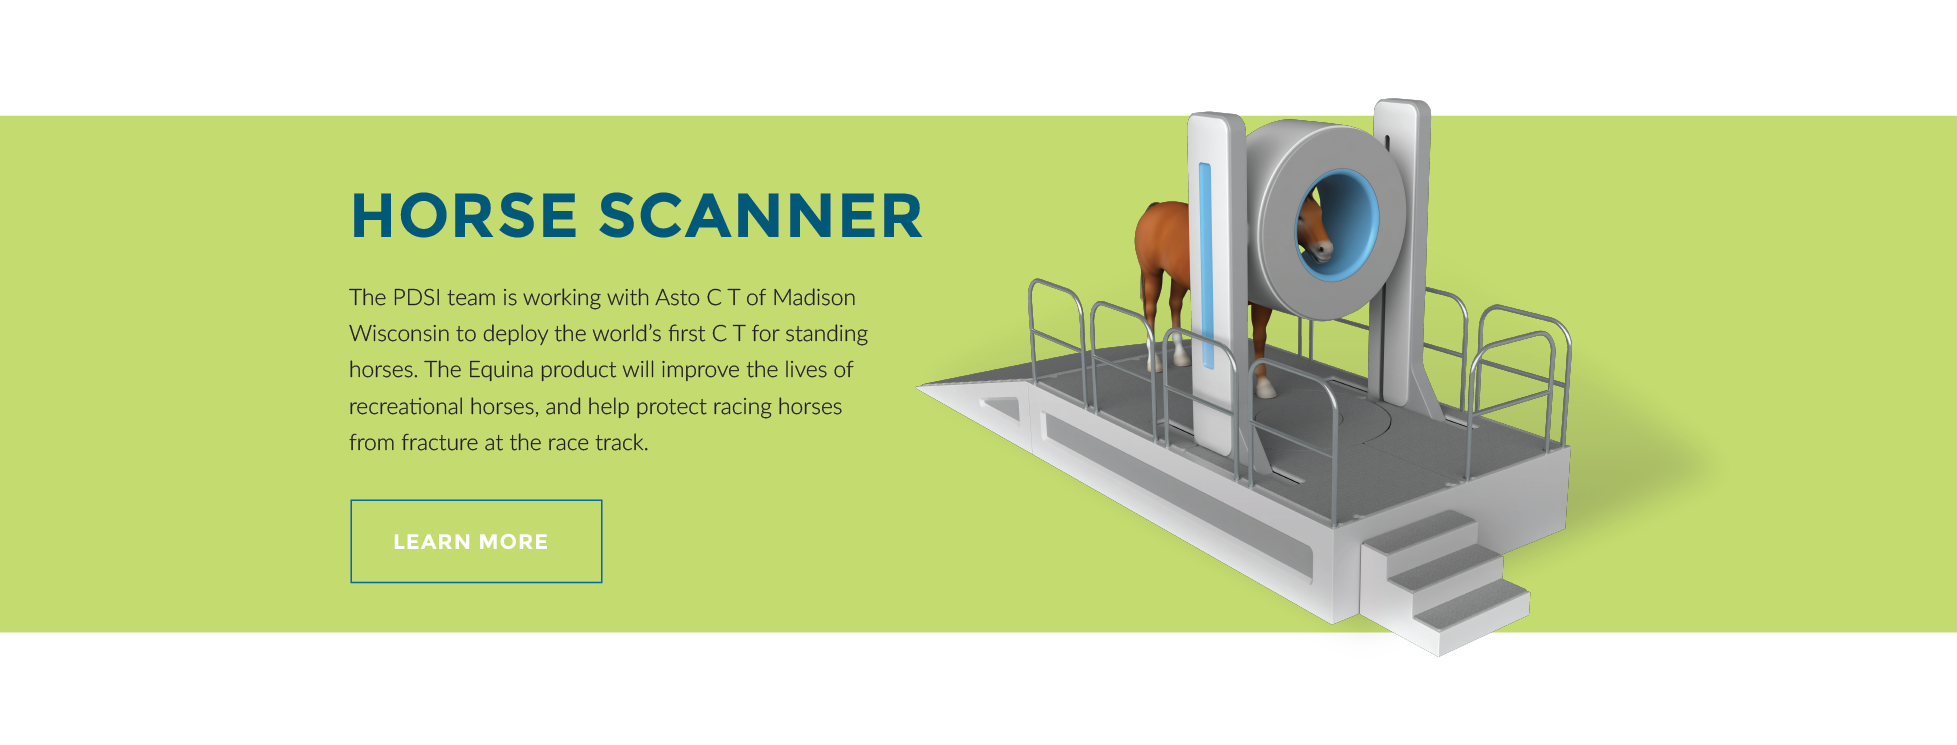 carousel_horse_scanner-01.png